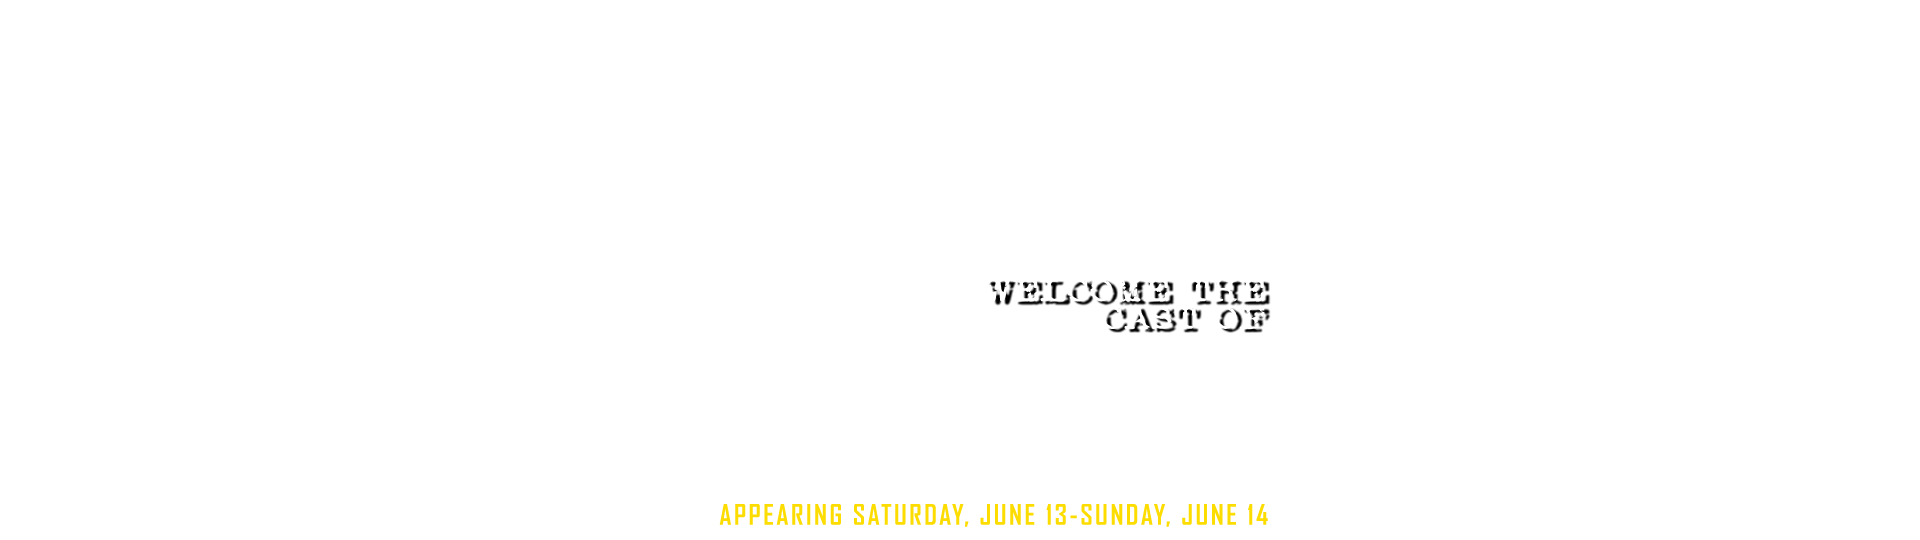 Welcome the cast of The Boys